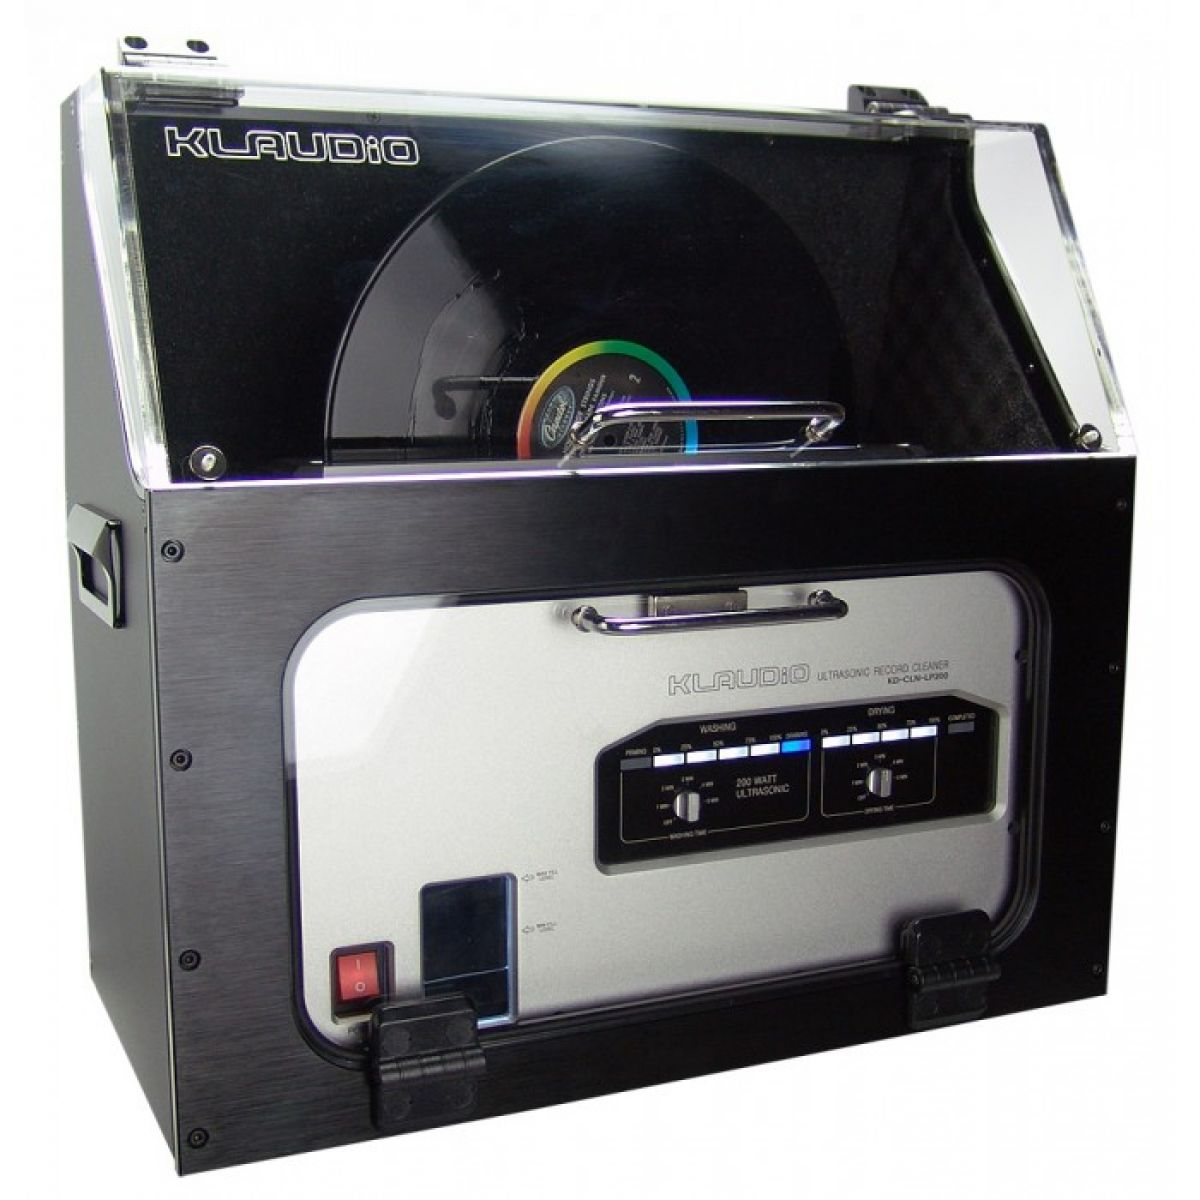 Klaudio's silencer is a very high quality acoustic dampening case for the KD-CLN-LP200 ultrasonic record cleaner. With a substantial noise reduction down to approximately 50dBA, records can now be cleaned and dried nearby instead of in another room. The e